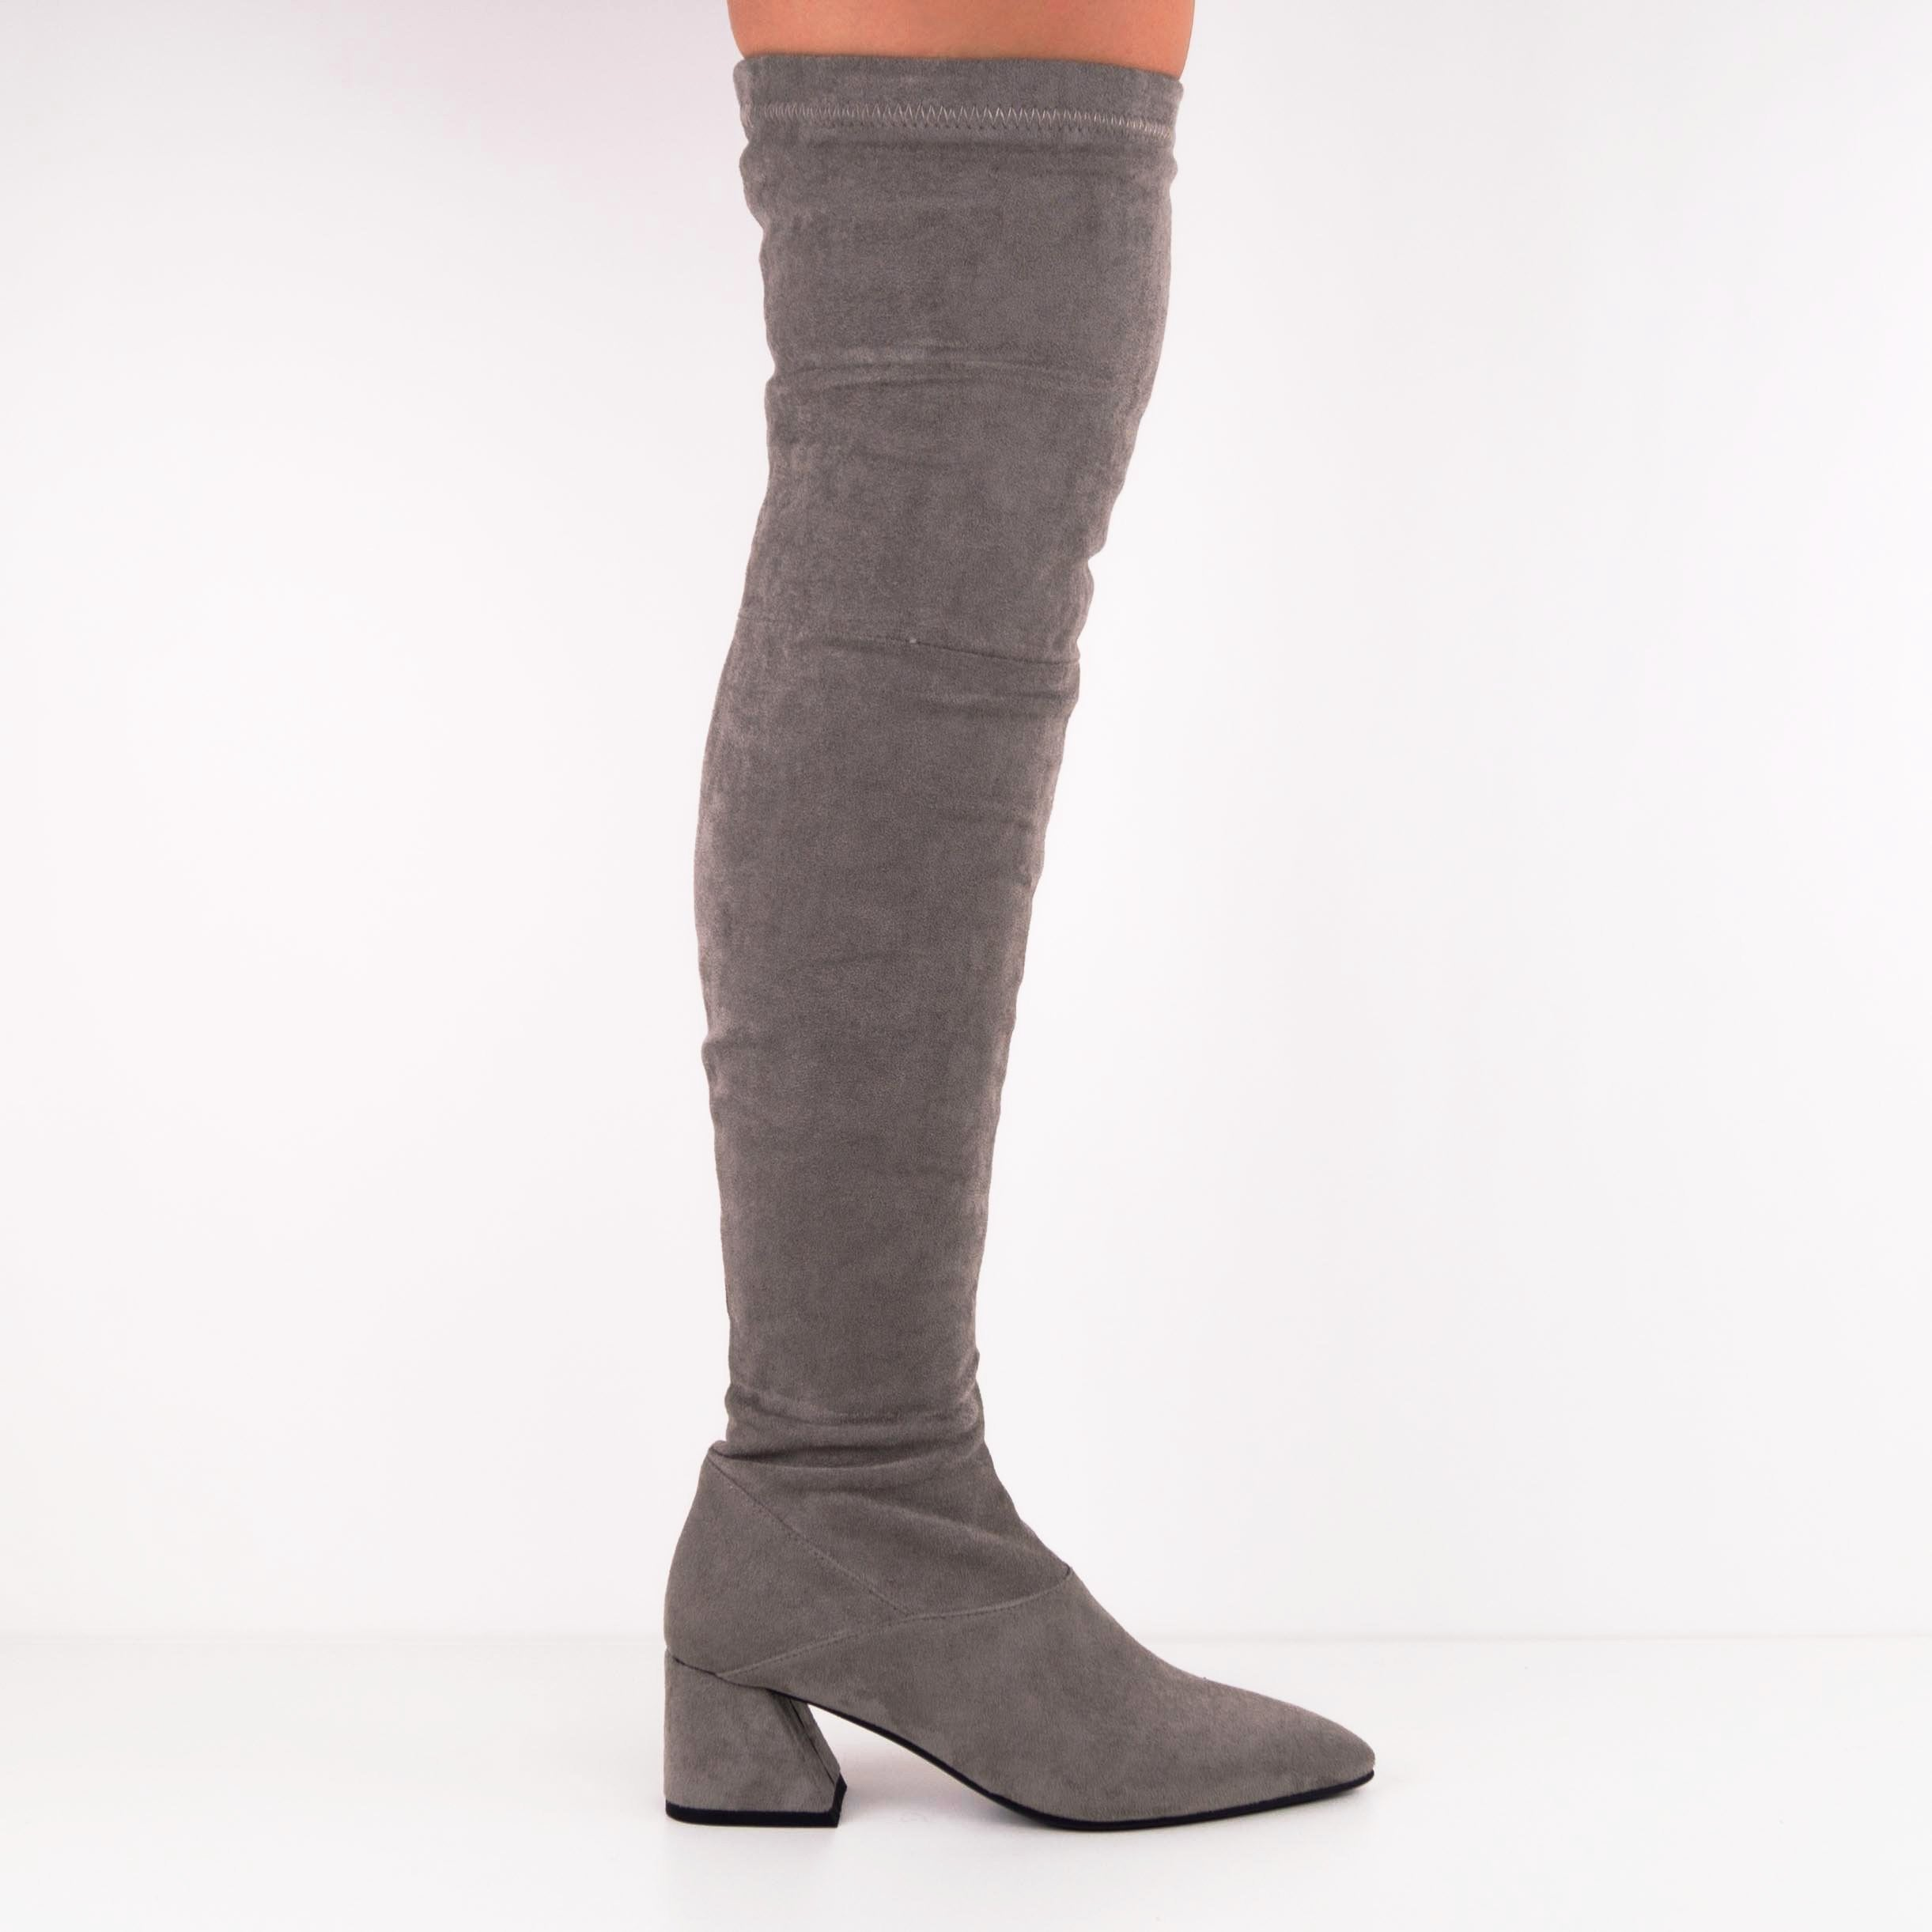 FAITH Suede Over-the-knee Boots with